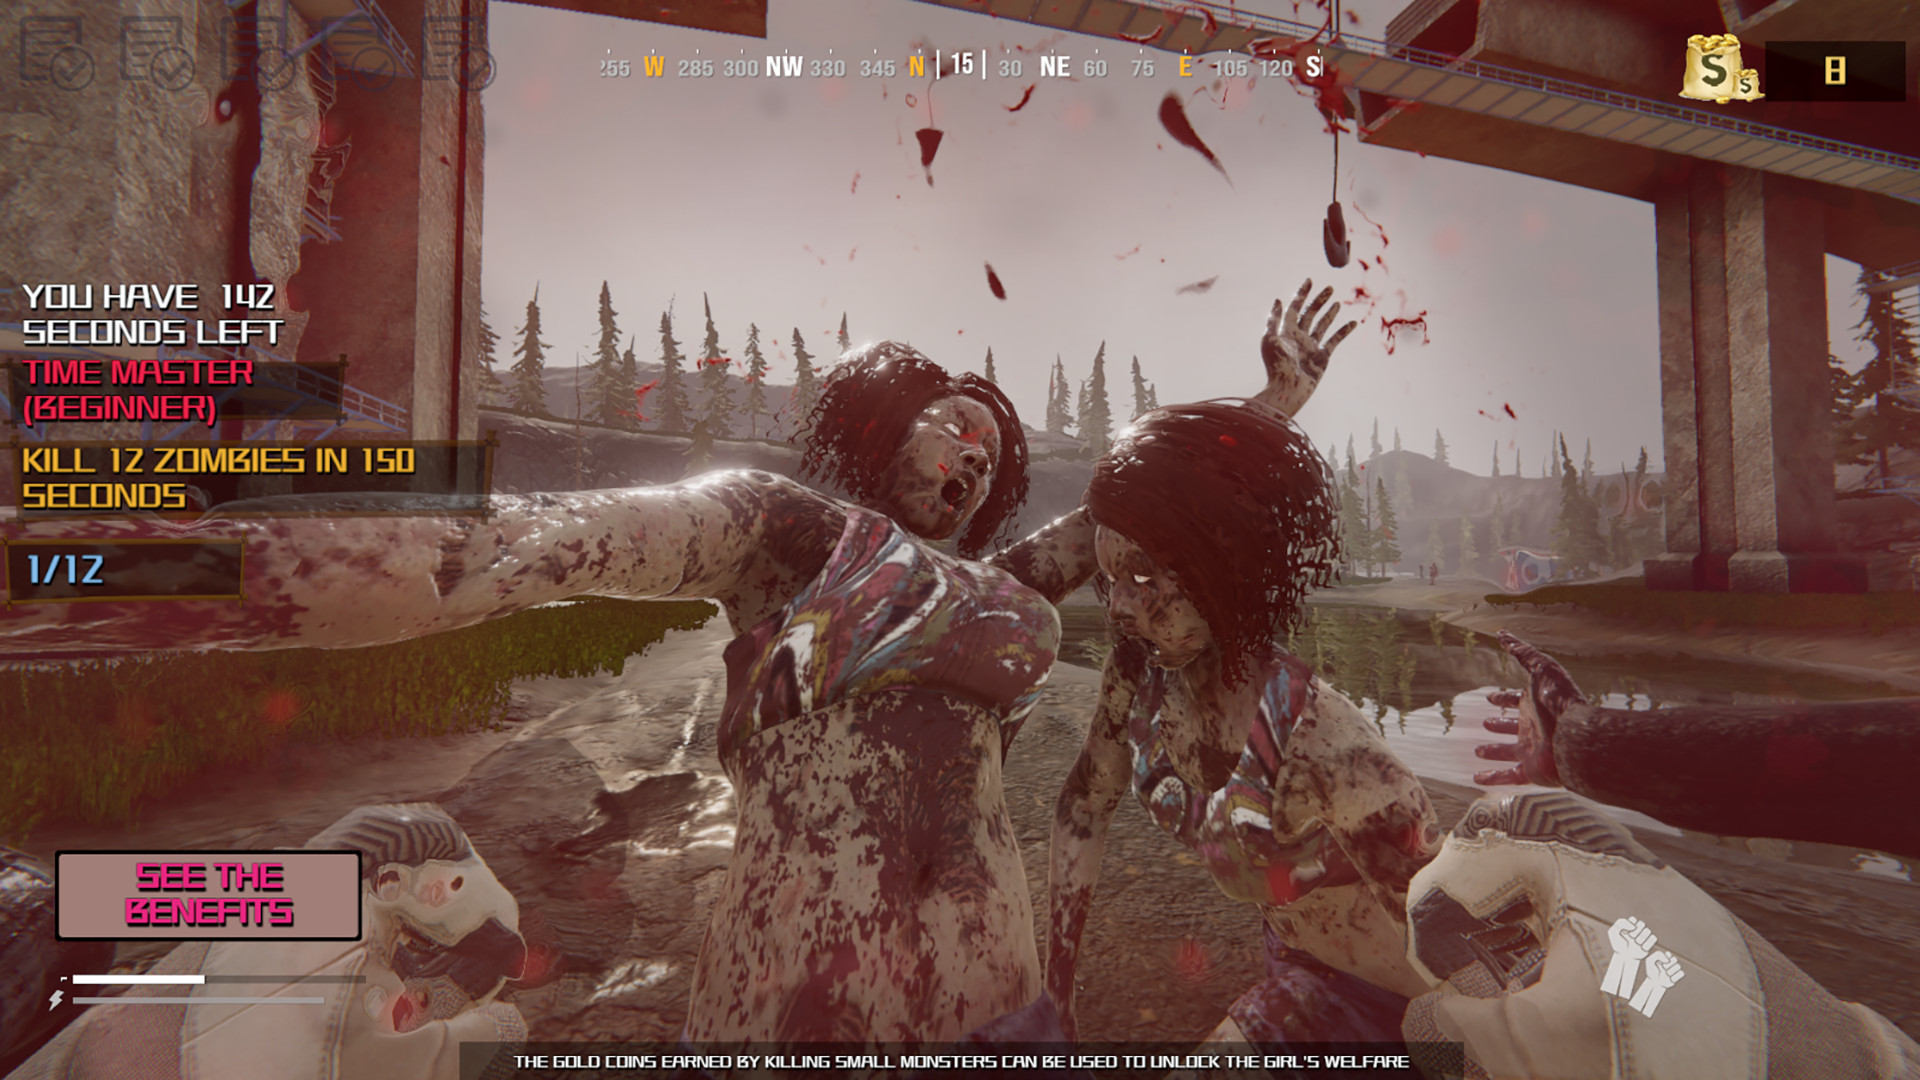 Save the girls Action screenshot